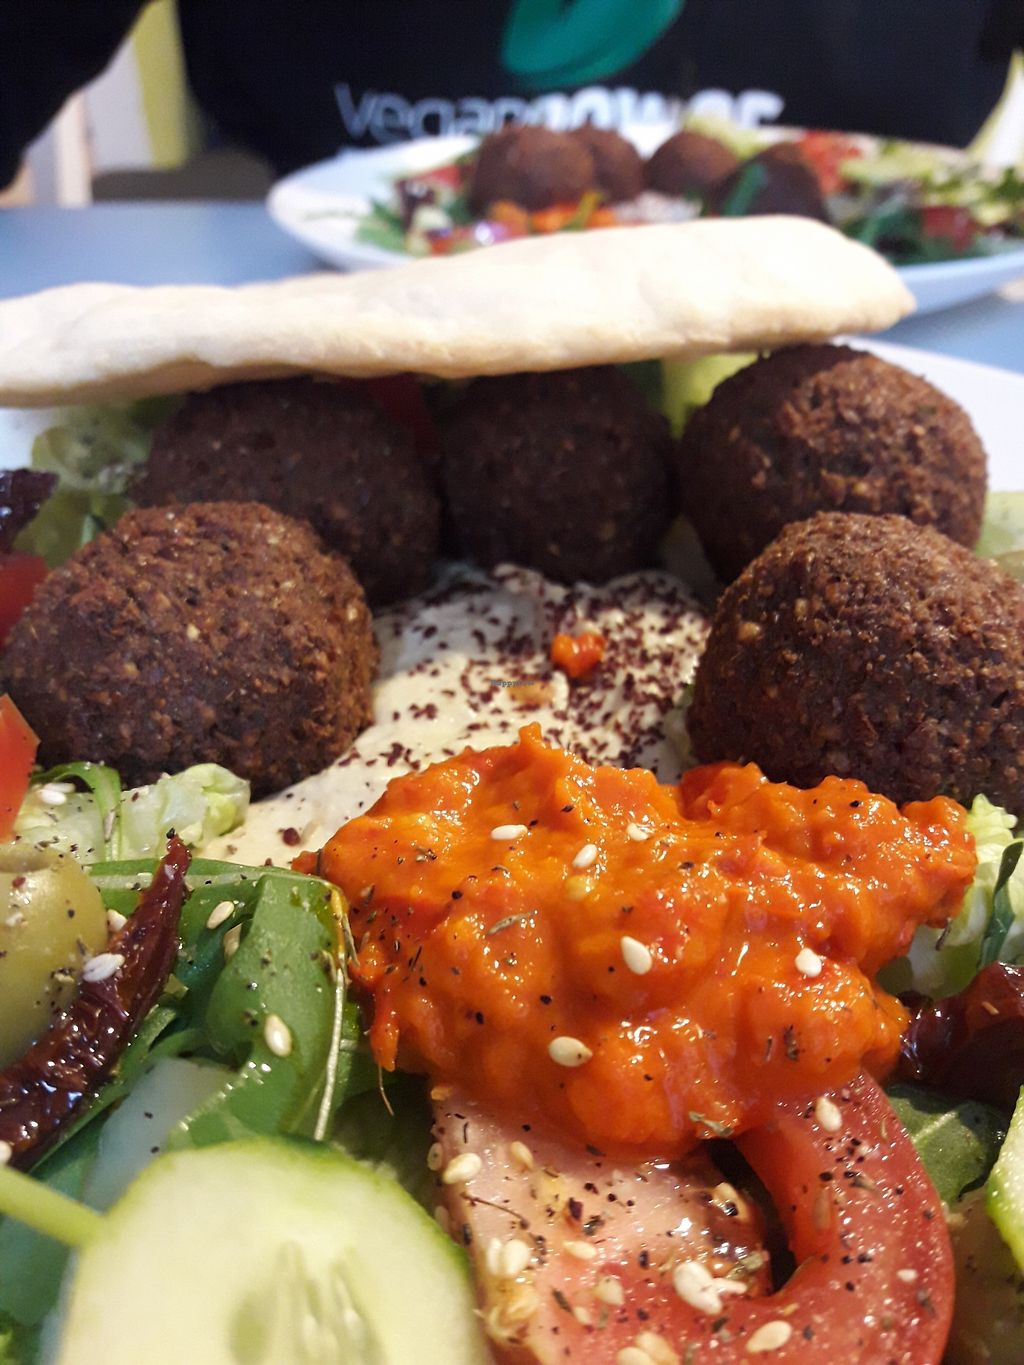 """Photo of Zielona Micha  by <a href=""""/members/profile/DimitraPontikaki"""">DimitraPontikaki</a> <br/>Falafel with hummus and salad... yiammmyyyy <br/> March 25, 2018  - <a href='/contact/abuse/image/94991/375948'>Report</a>"""